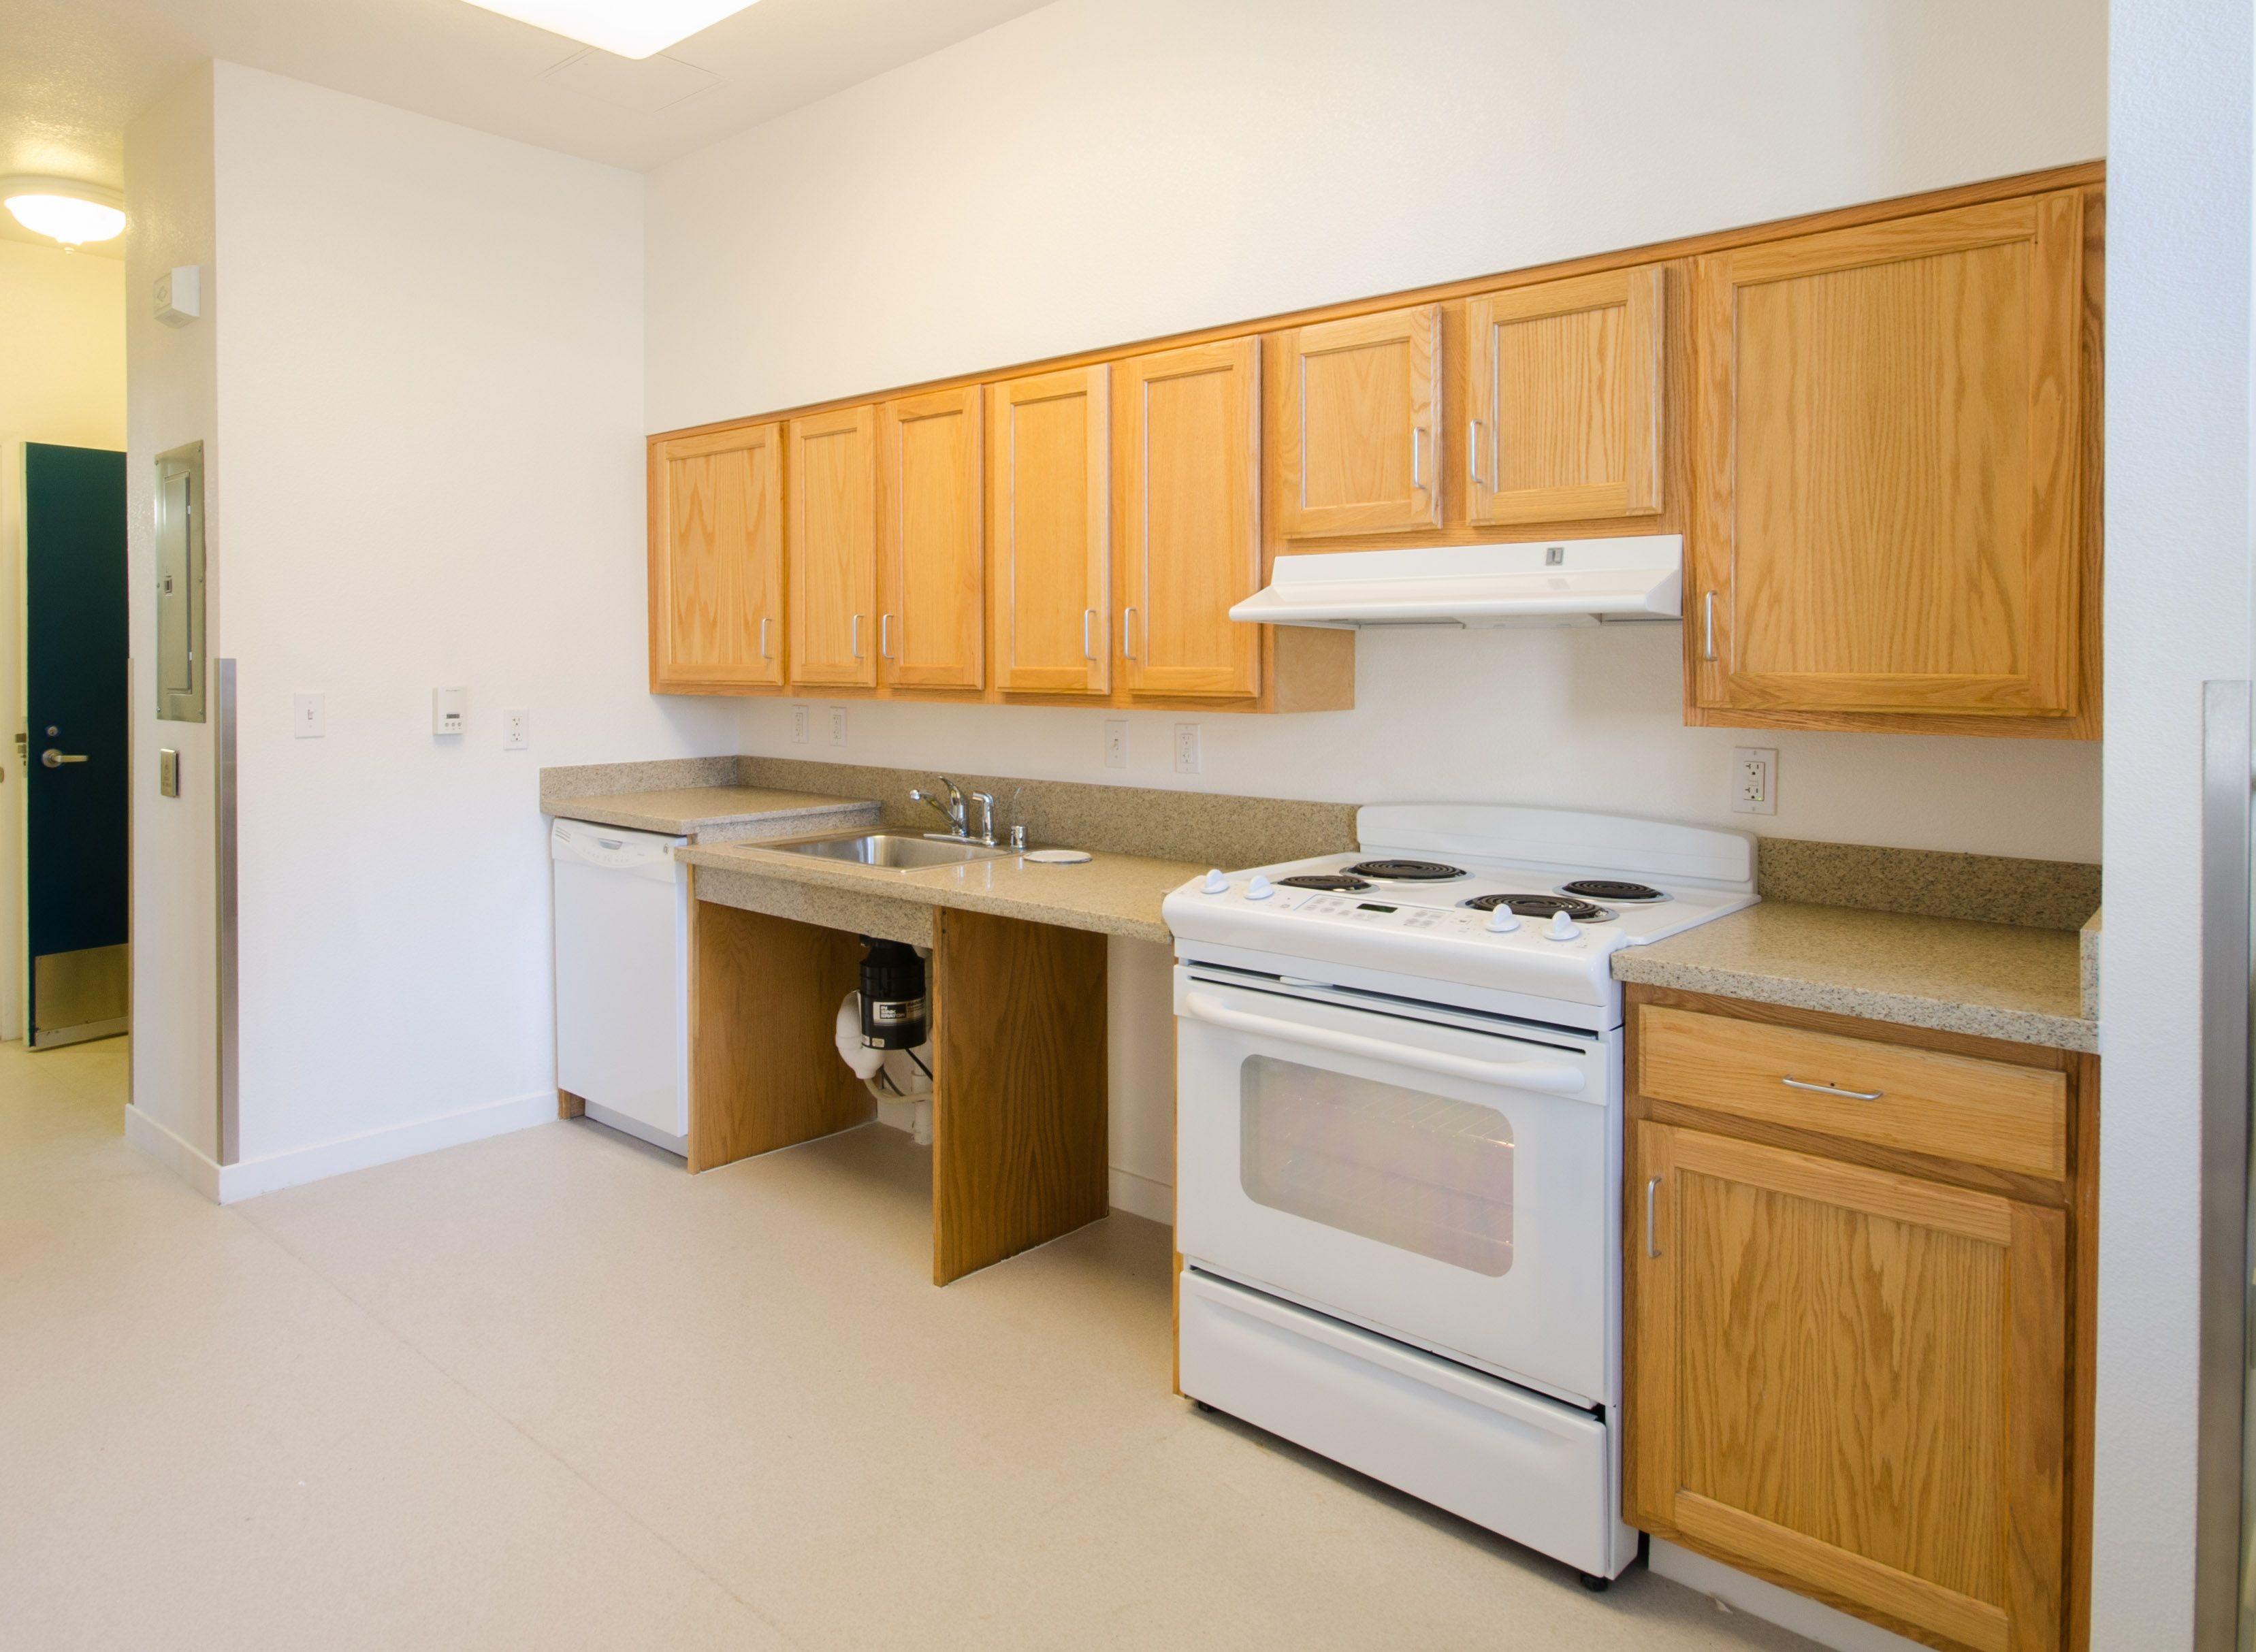 145 Irving - Apt 101 - ADA Accessible | Kitchen cabinets ...